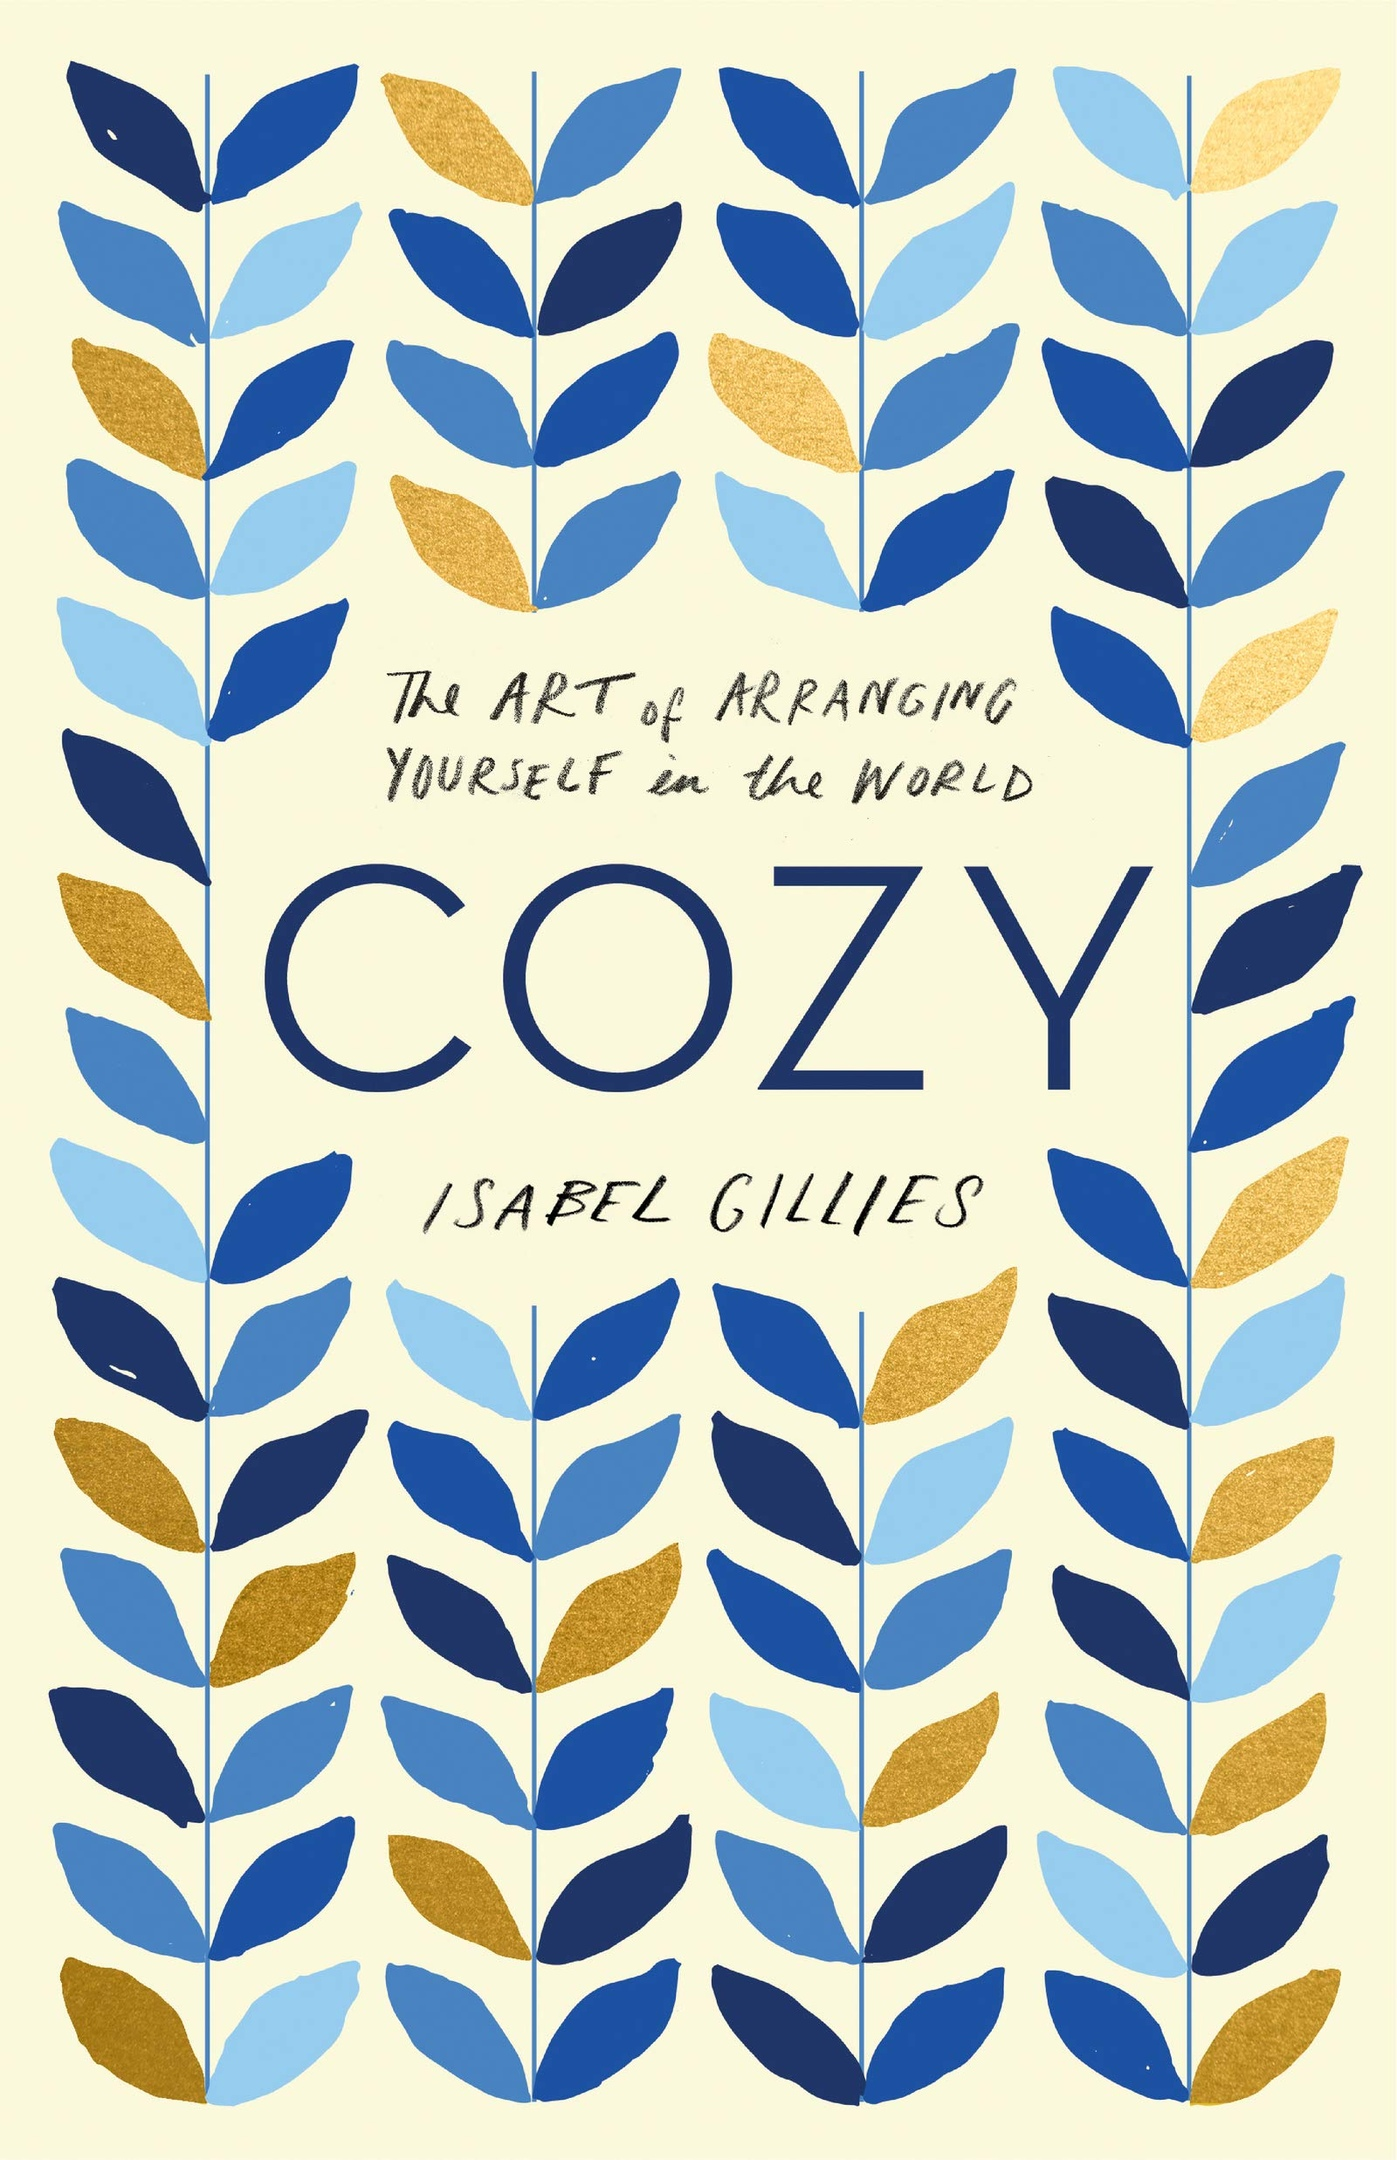 Isabel Gillies – Cozy